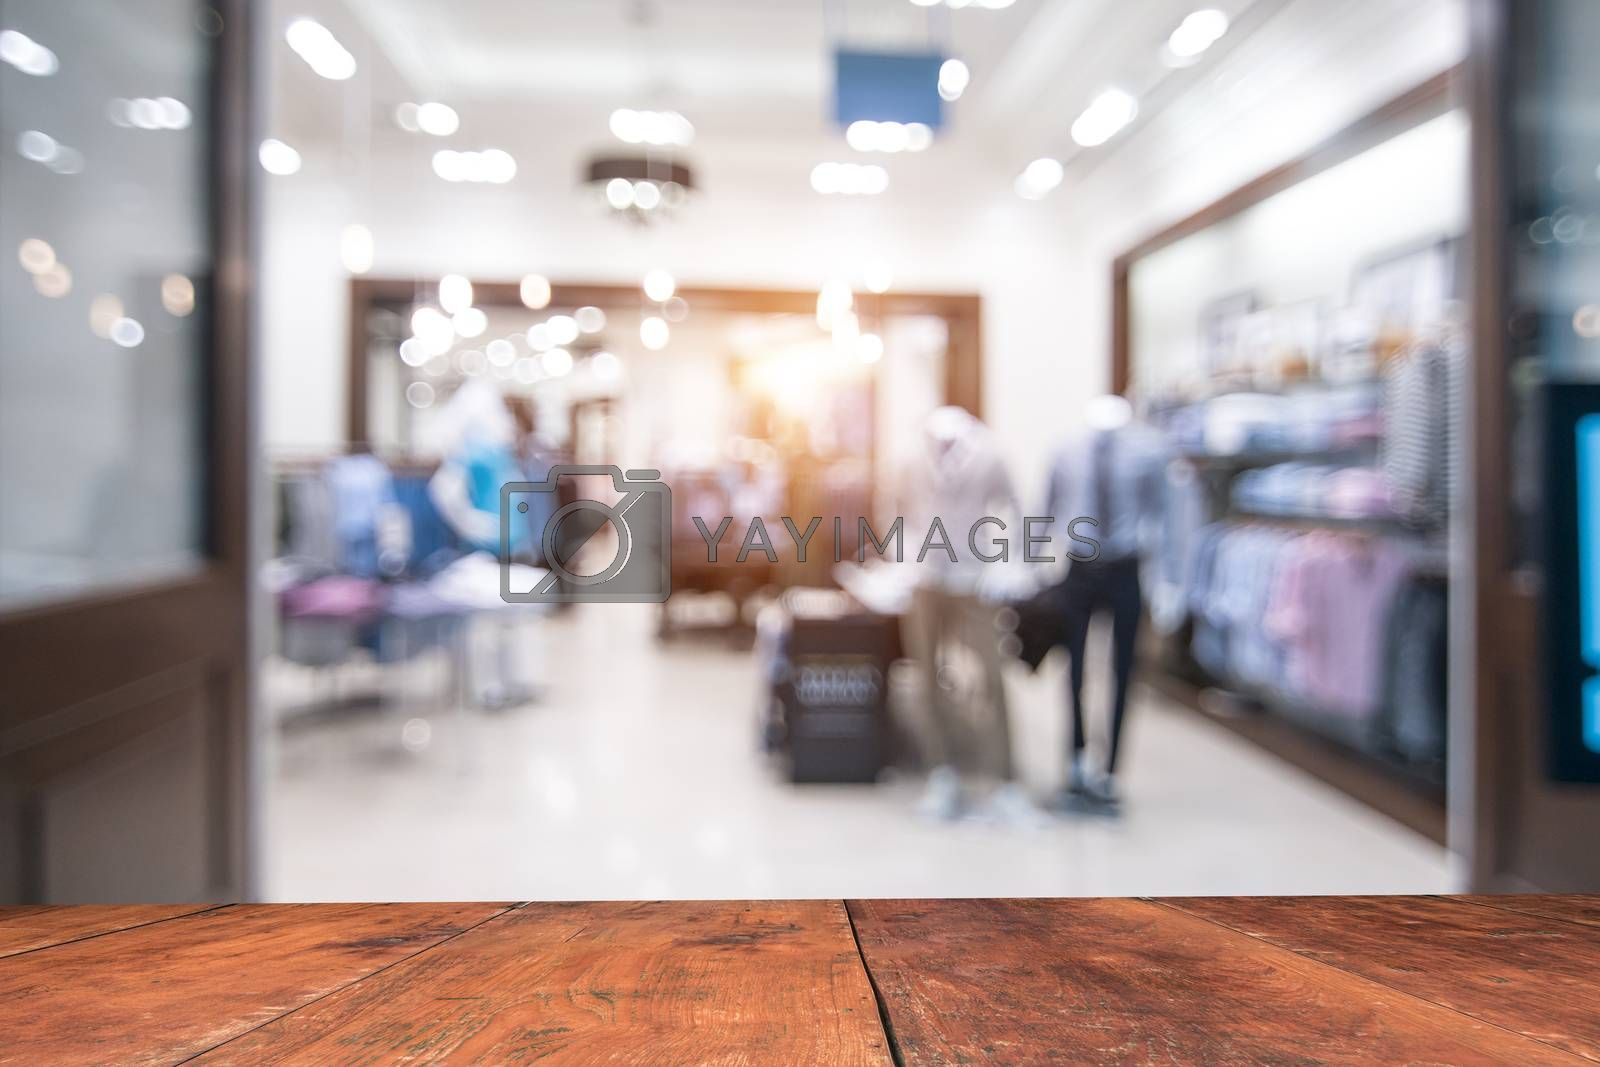 blurry background of Sports clothing store with bokeh image luxury and fashionable brand,can be used for montage or display your products